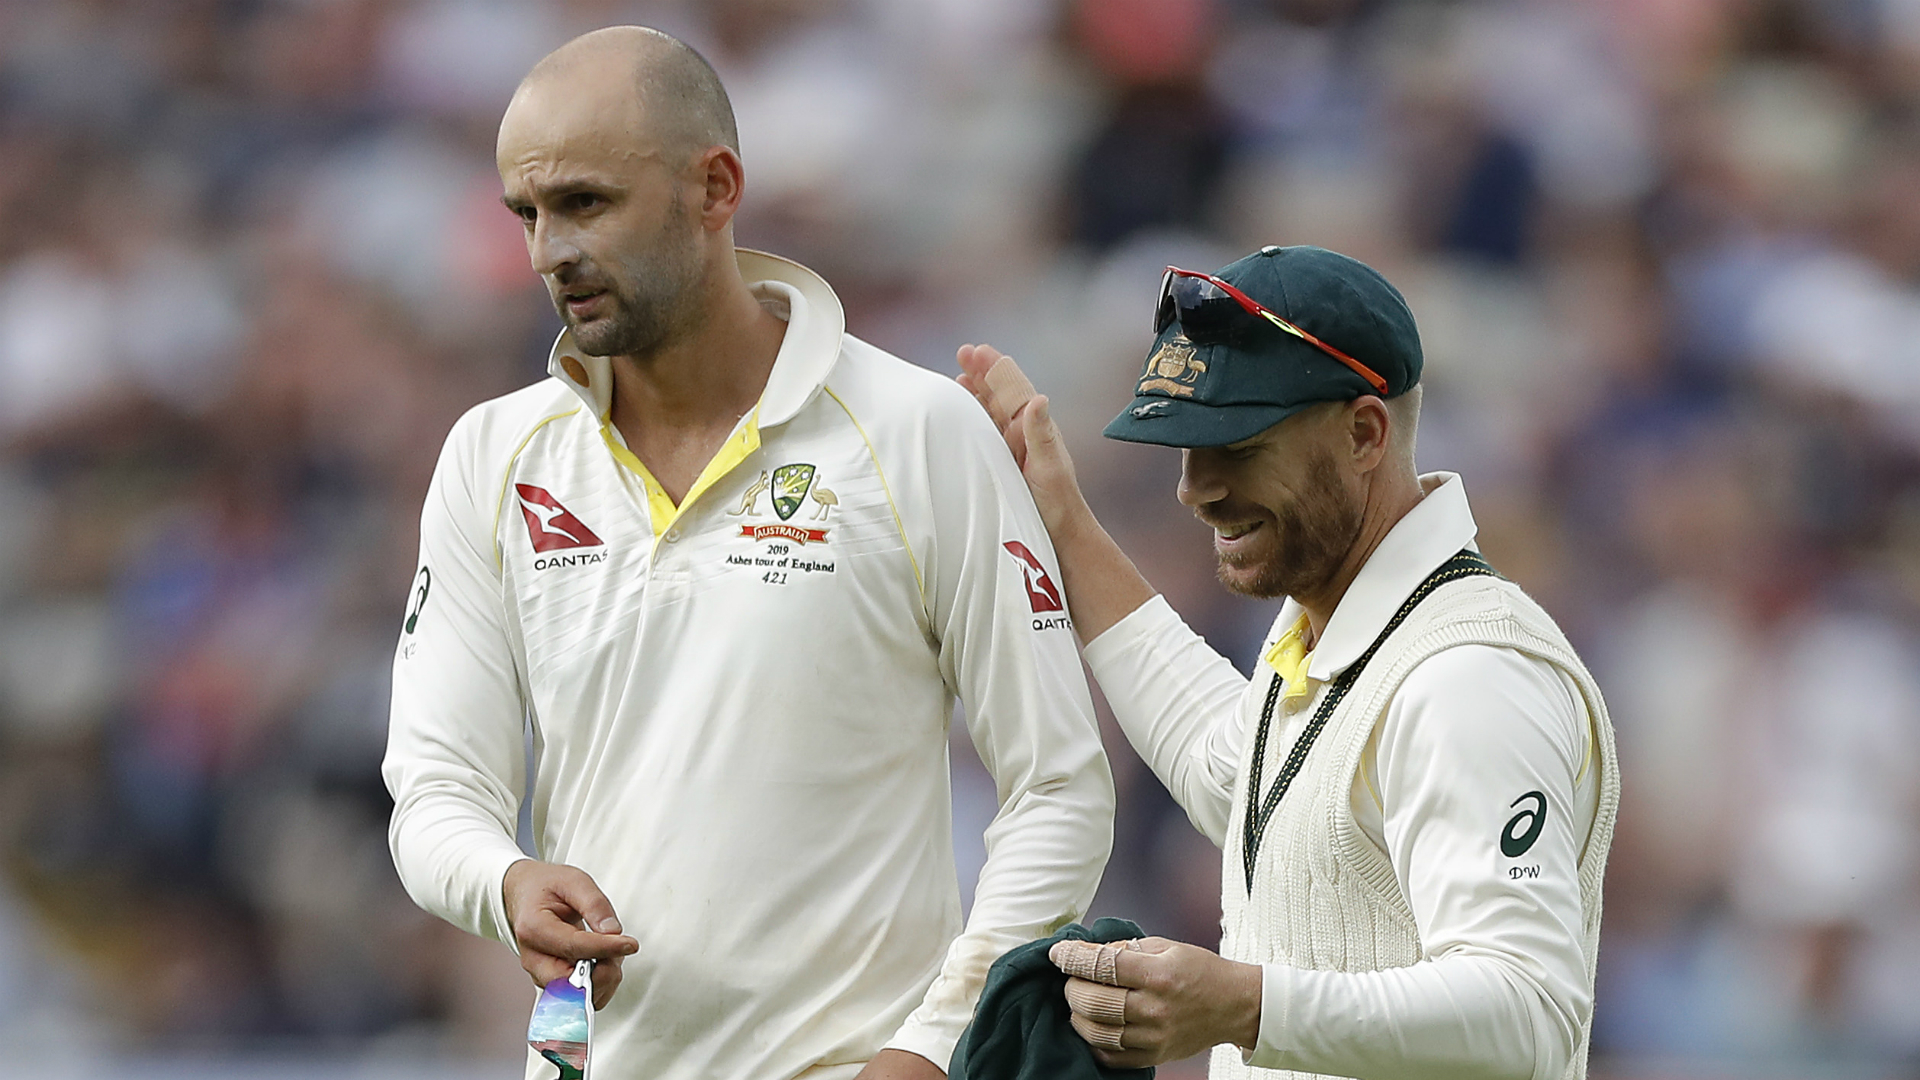 Ashes 2019: Lyon will be under pressure, says Thorpe